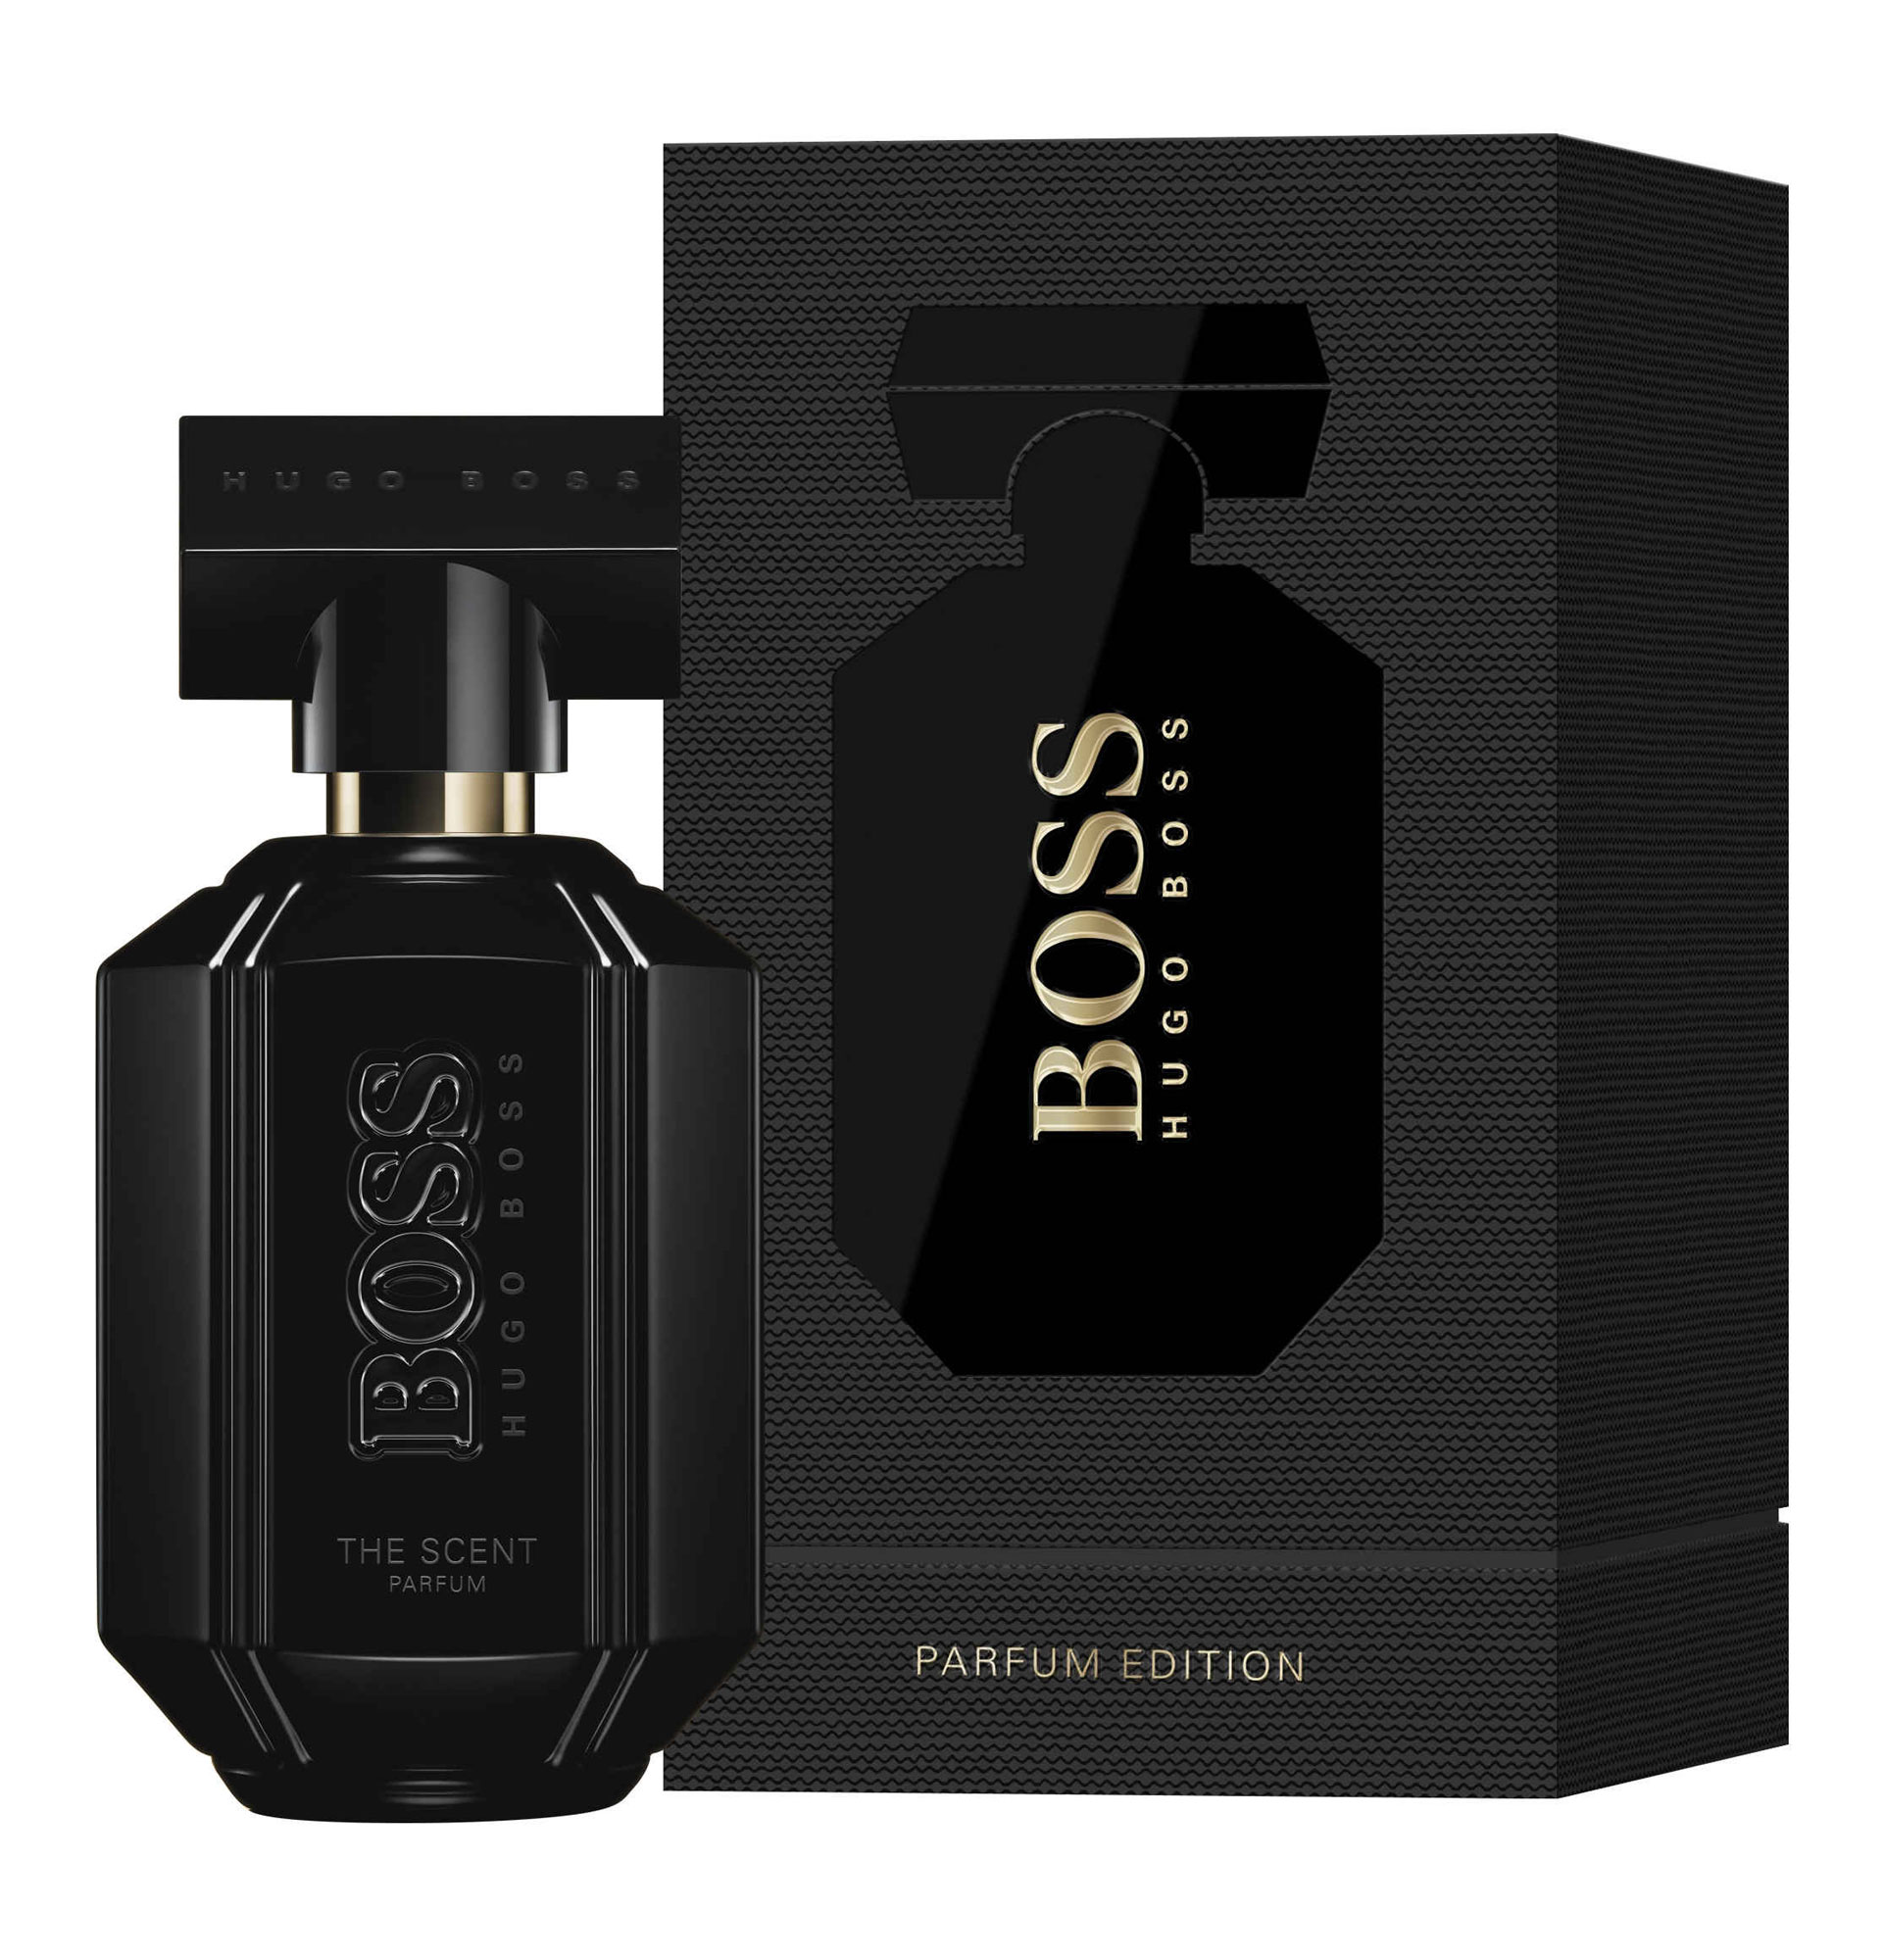 45fd5c38951 Boss The Scent For Her Parfum Edition Hugo Boss for women Pictures ...